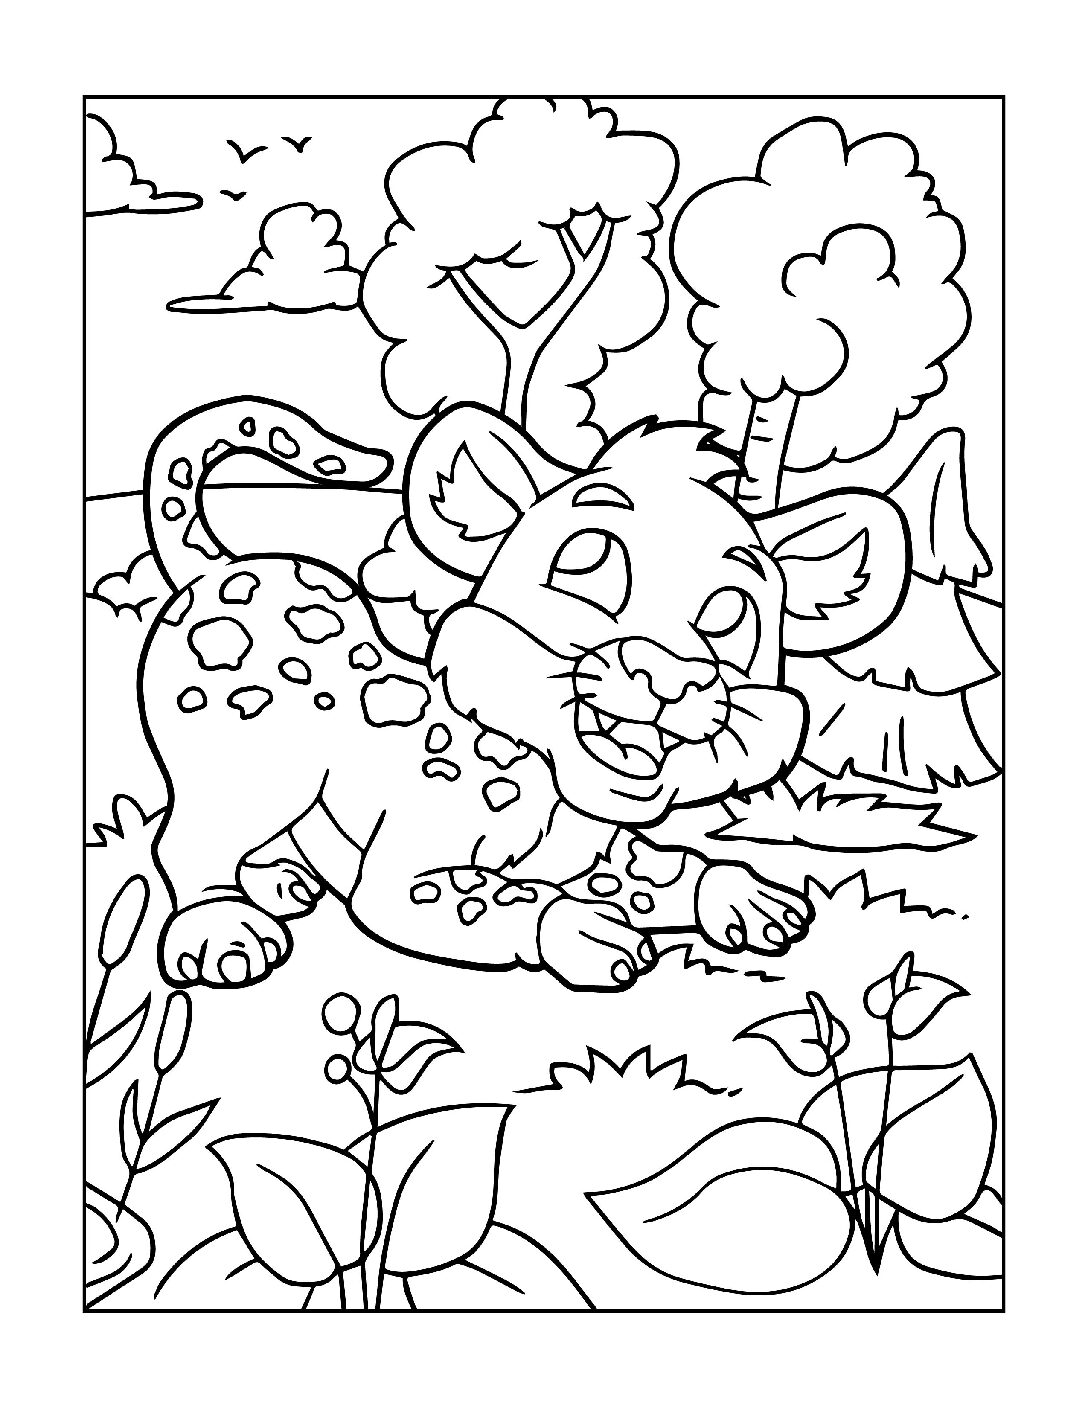 zoo colouring pictures 20 free printable zoo coloring pages everfreecoloringcom zoo pictures colouring